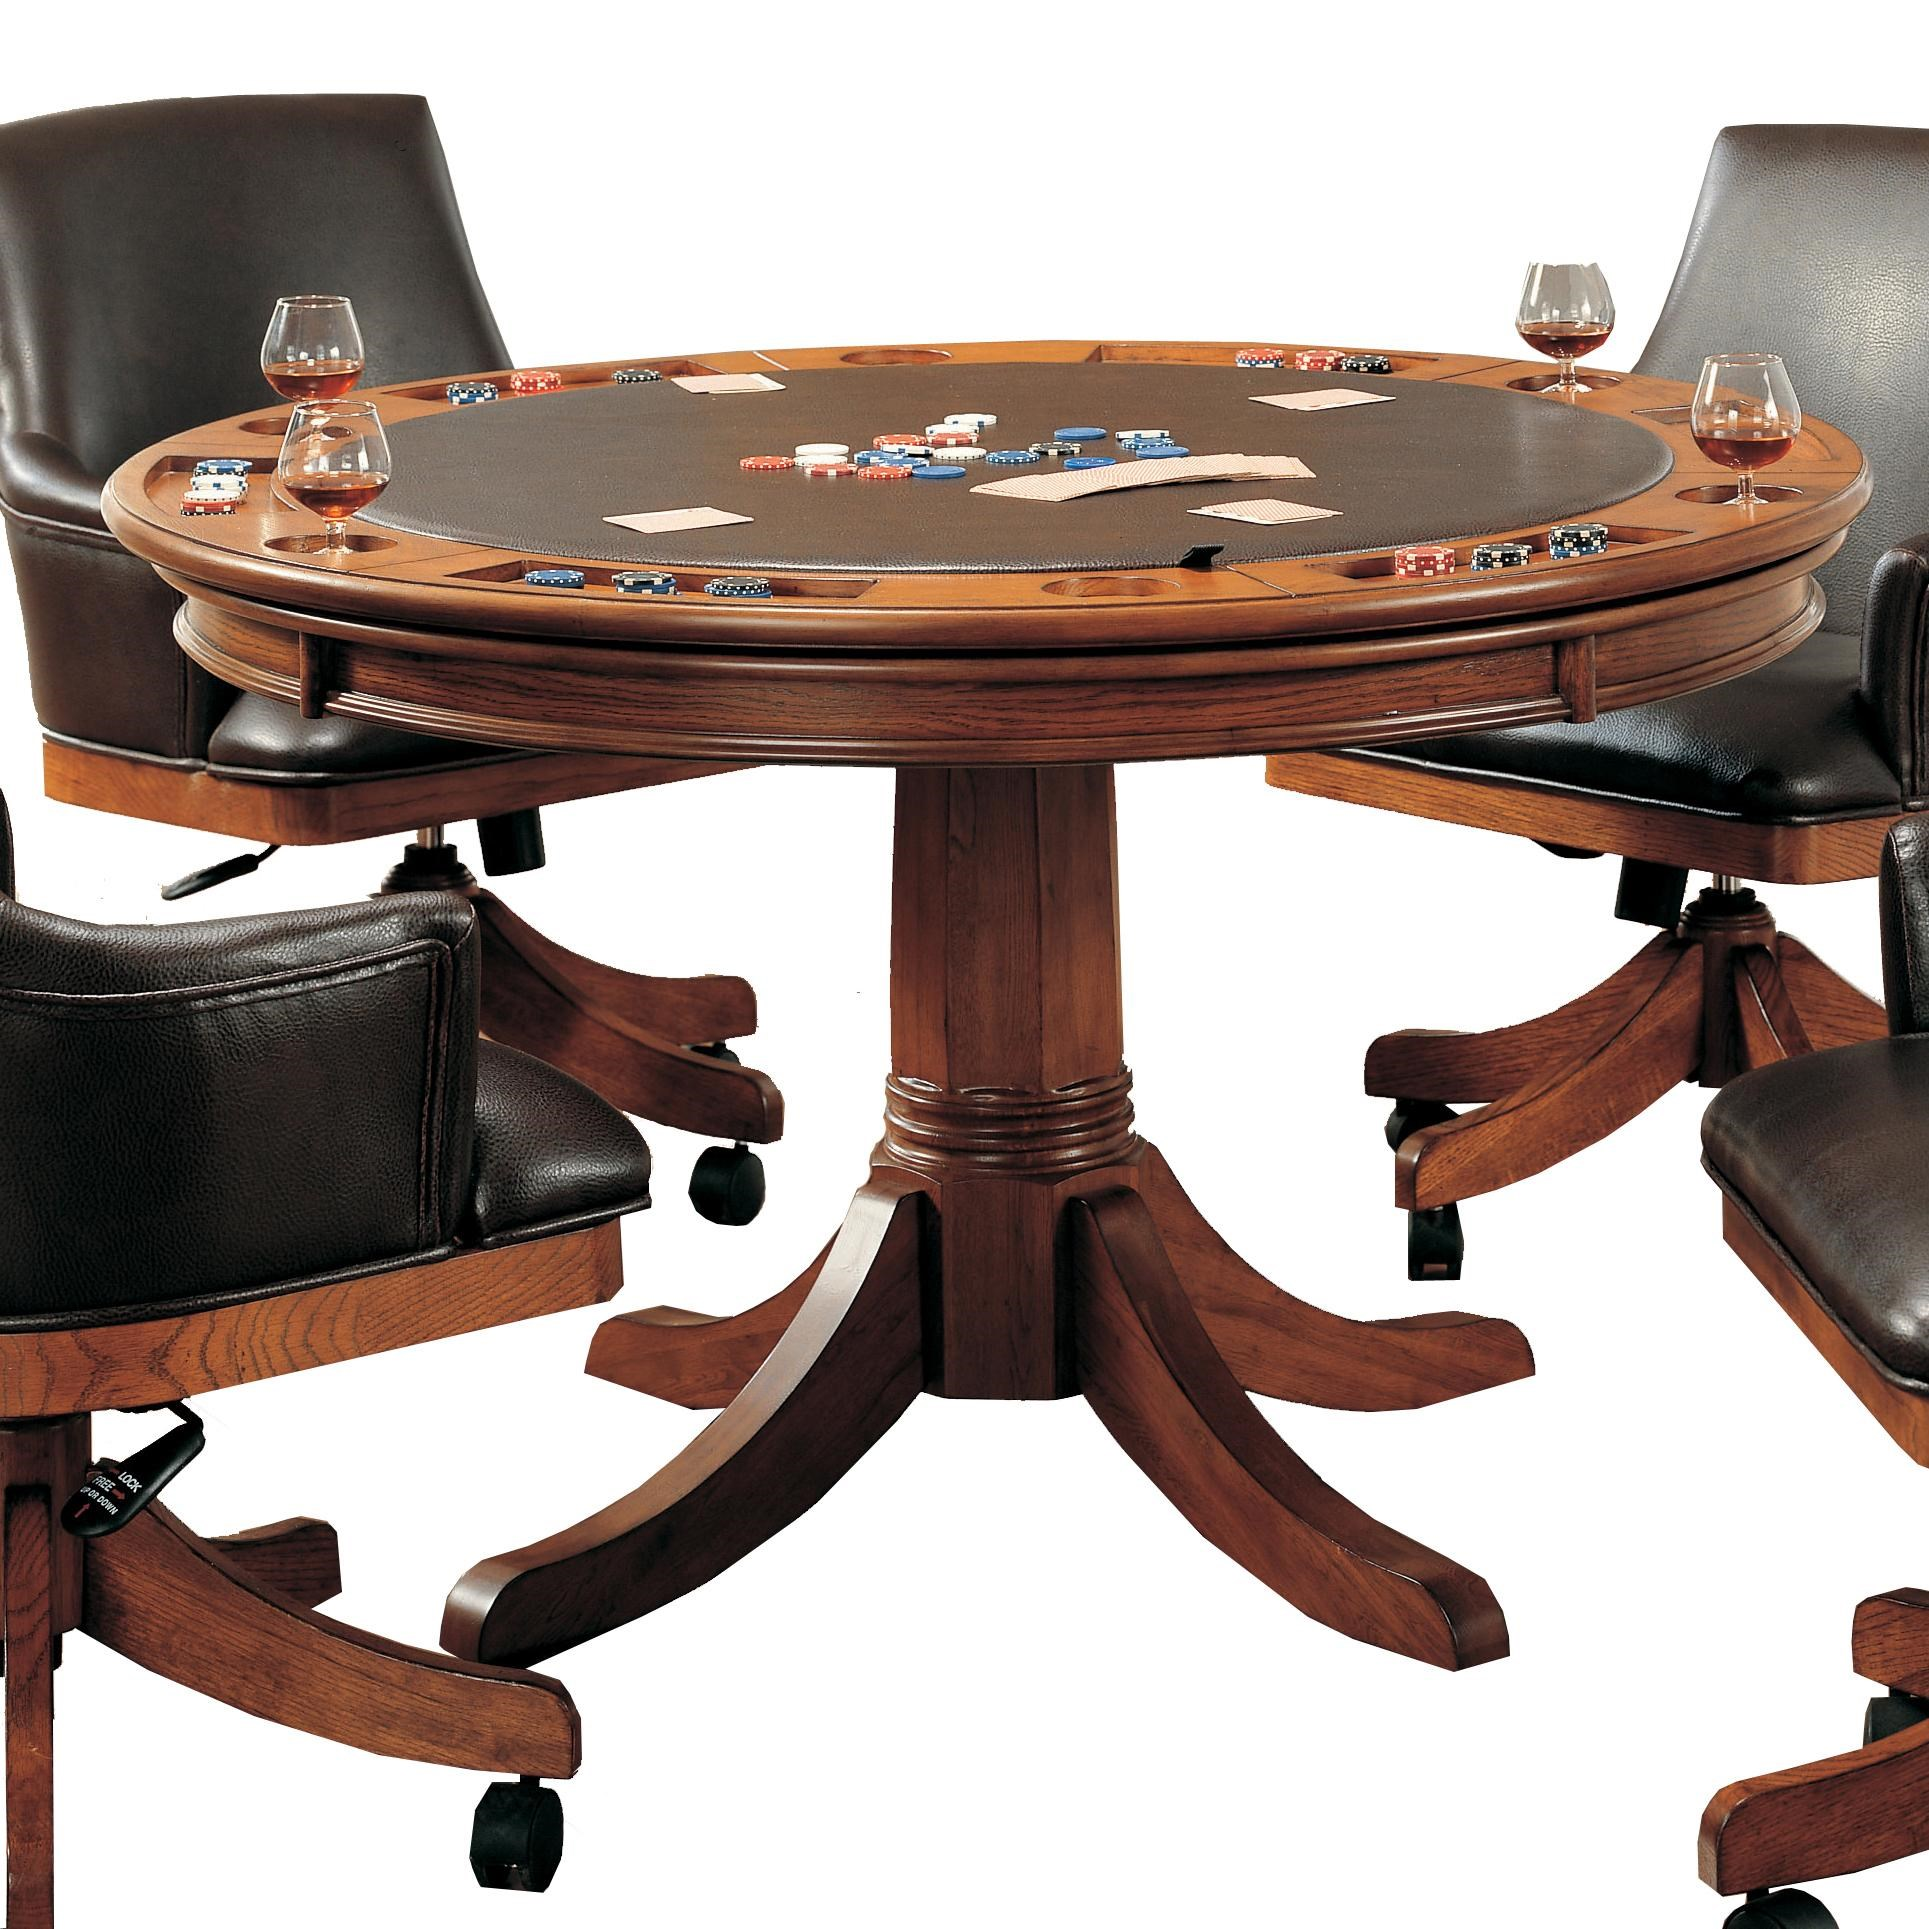 Dining room game